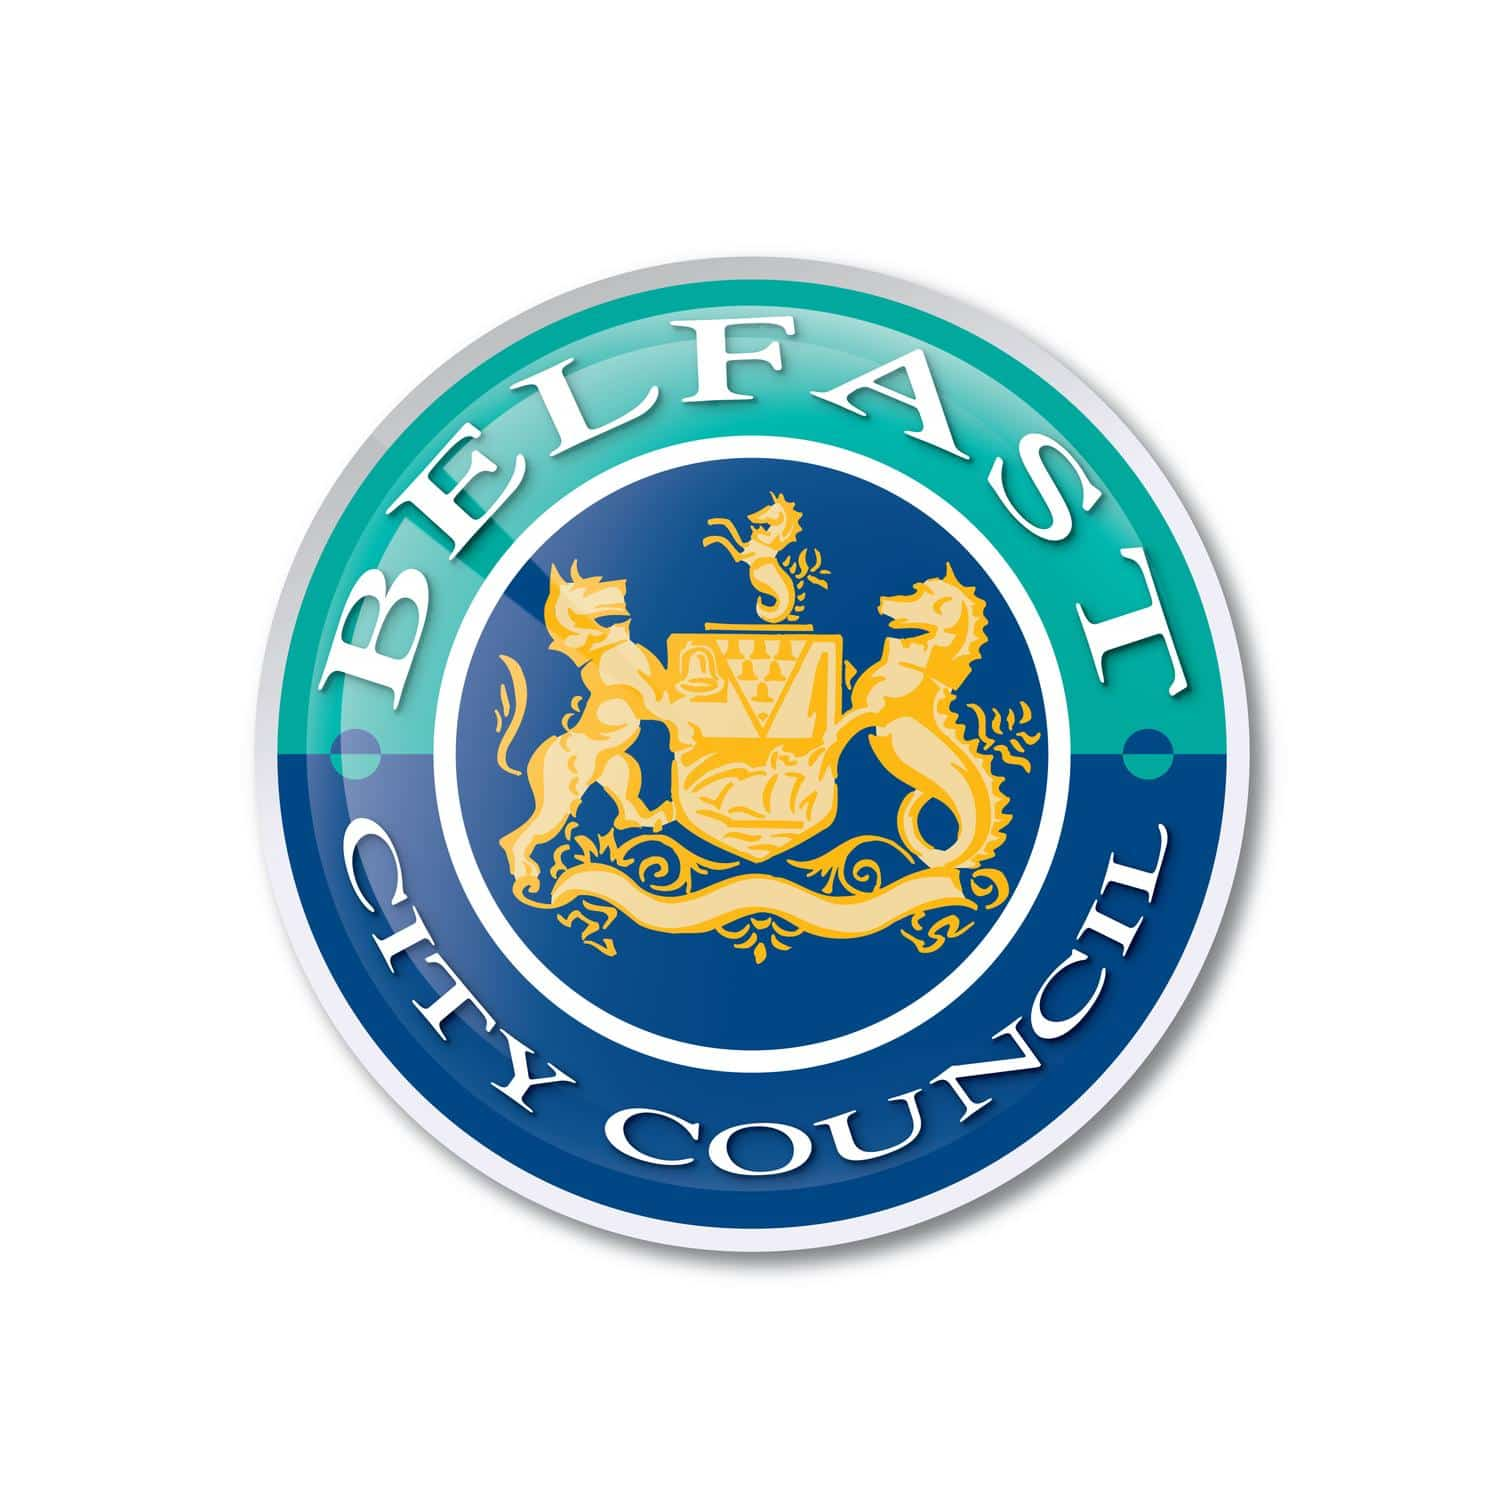 Belfast City Council - Local Council with Business Support